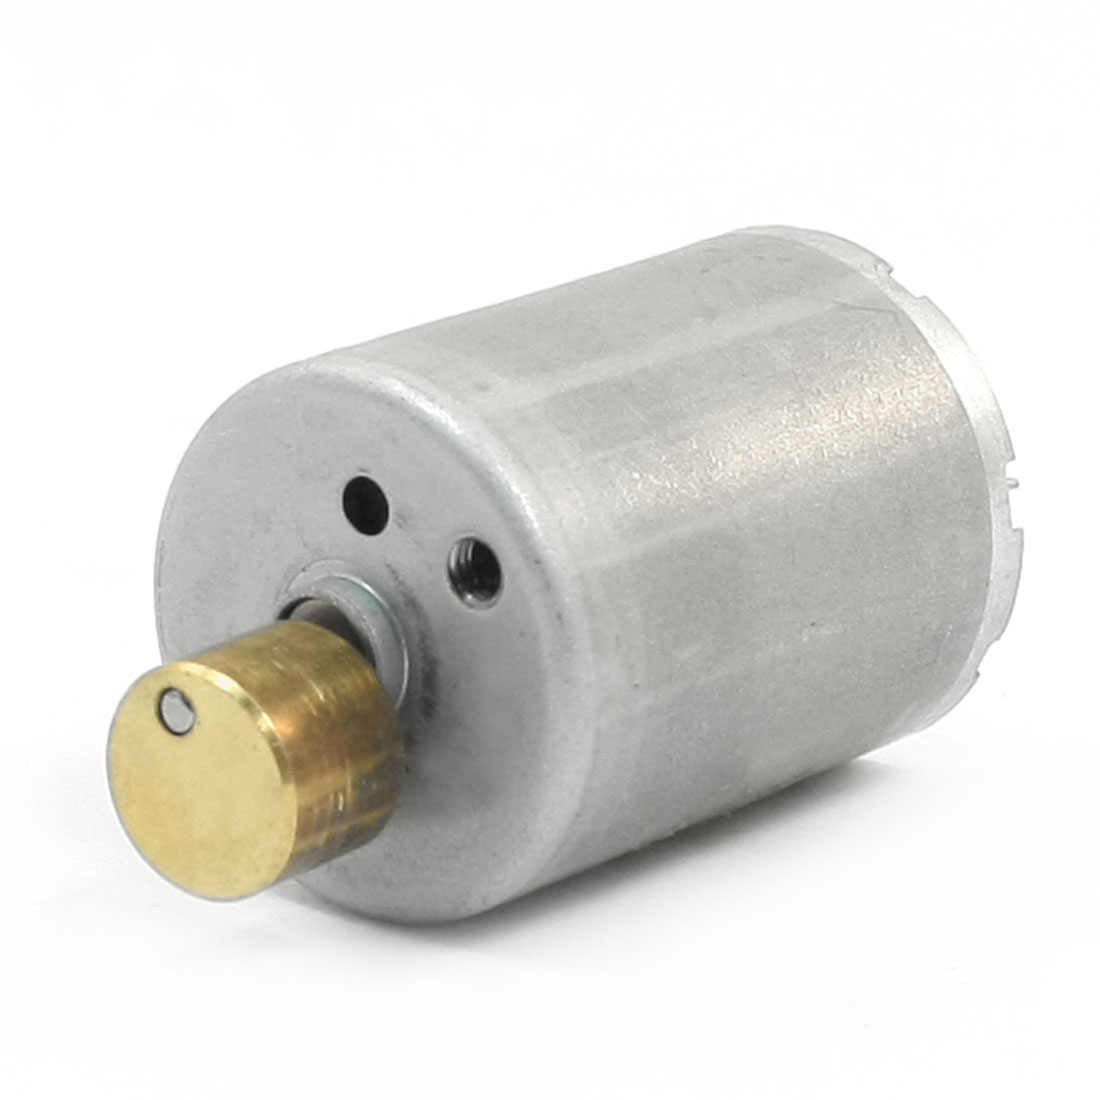 Round-Shaft-Cylinder-Electric-Mini-Vibration-Motor-4600RPM-DC-12V